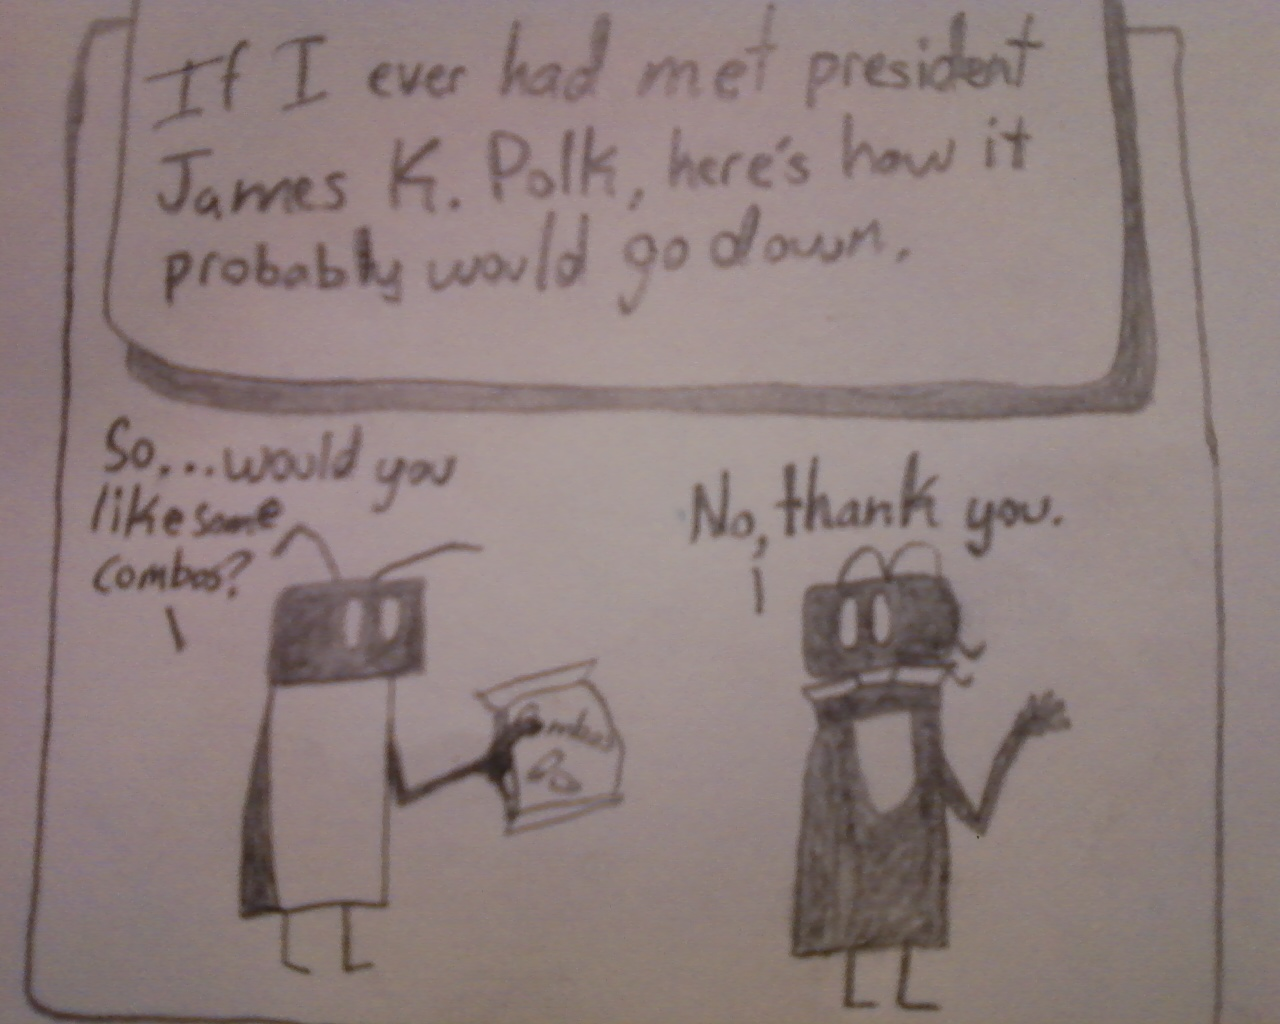 Bug & James Polk